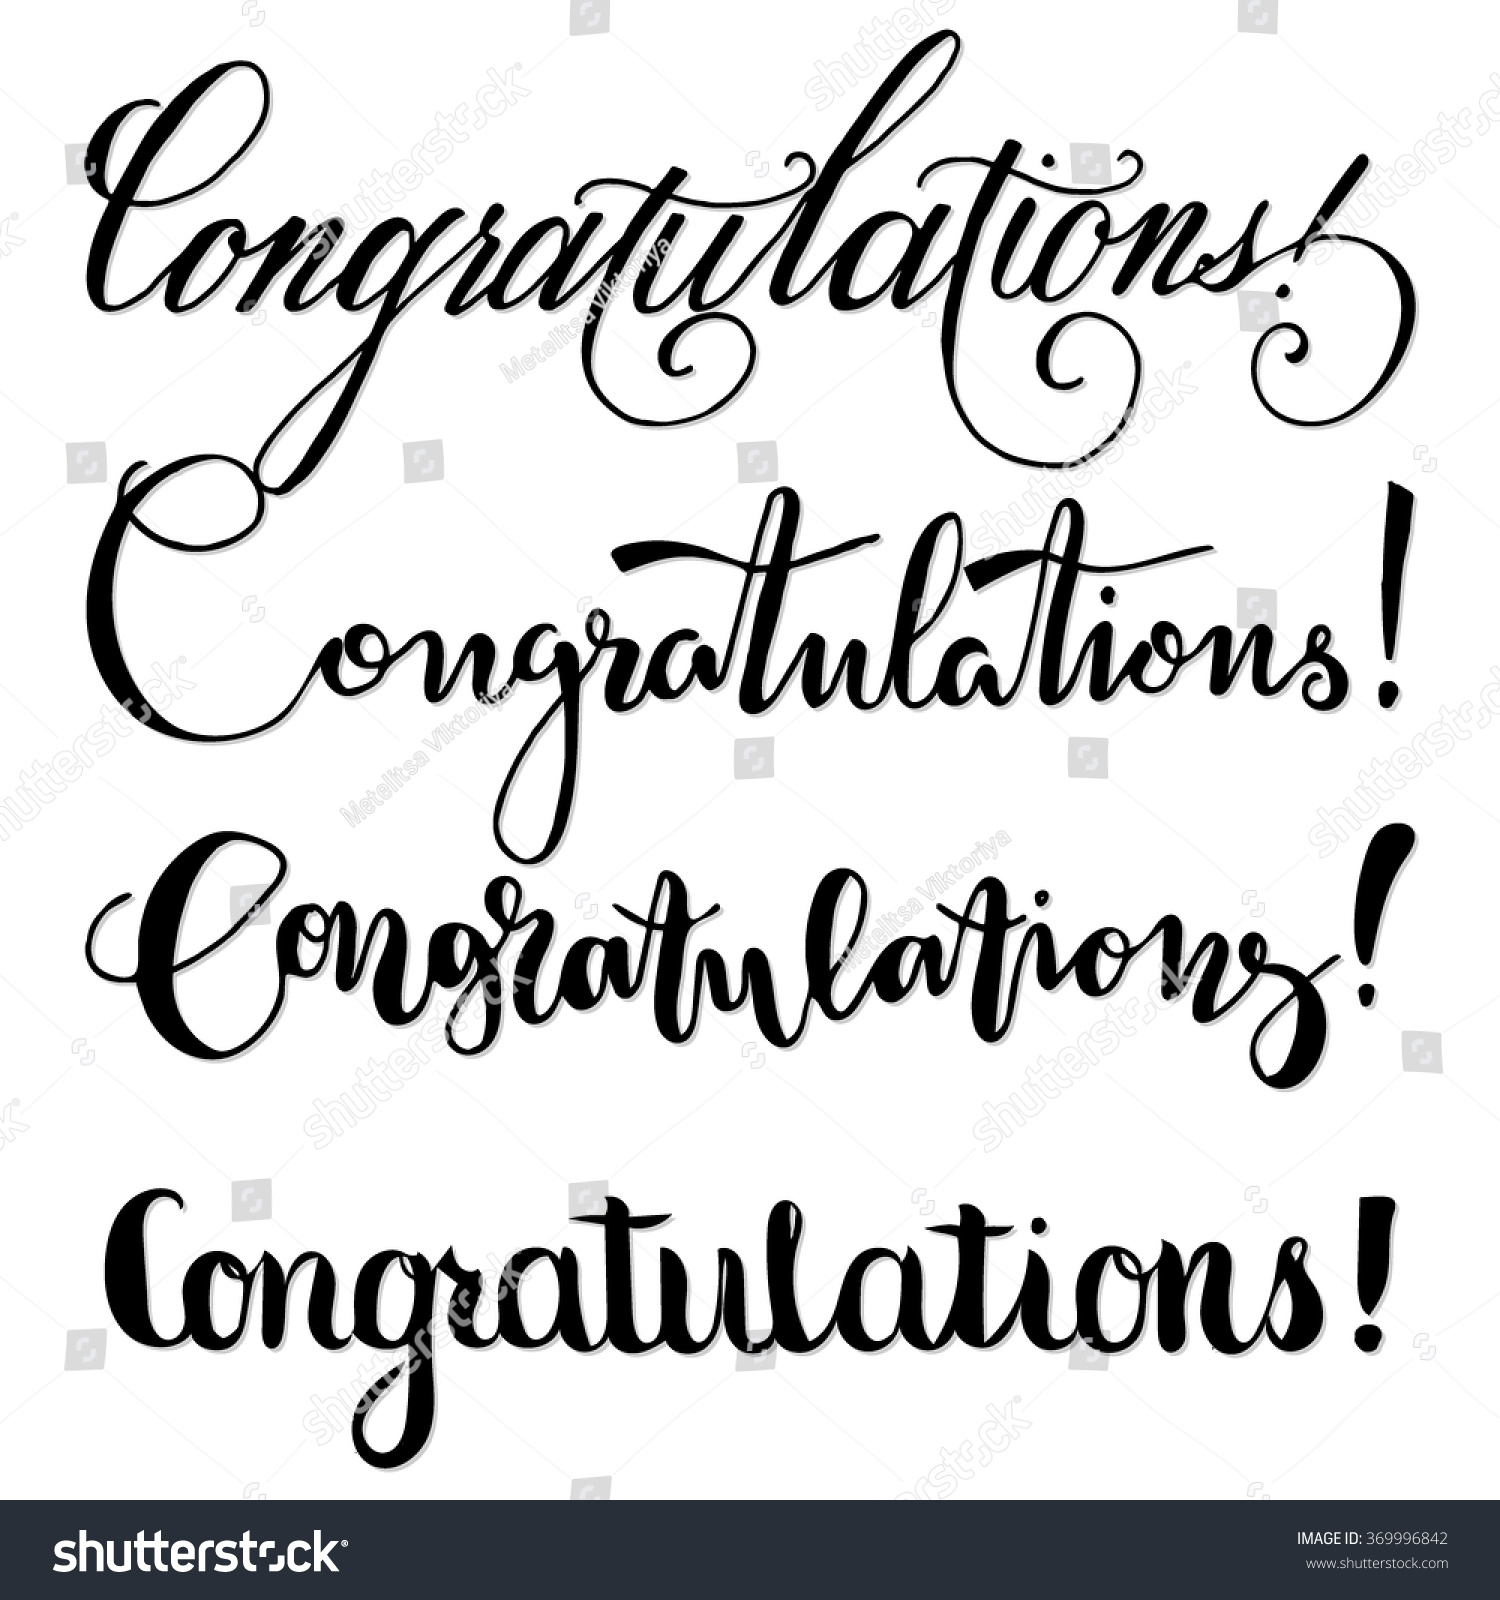 Congratulations collection hand letteringhand drawn quote Calligraphy as a career